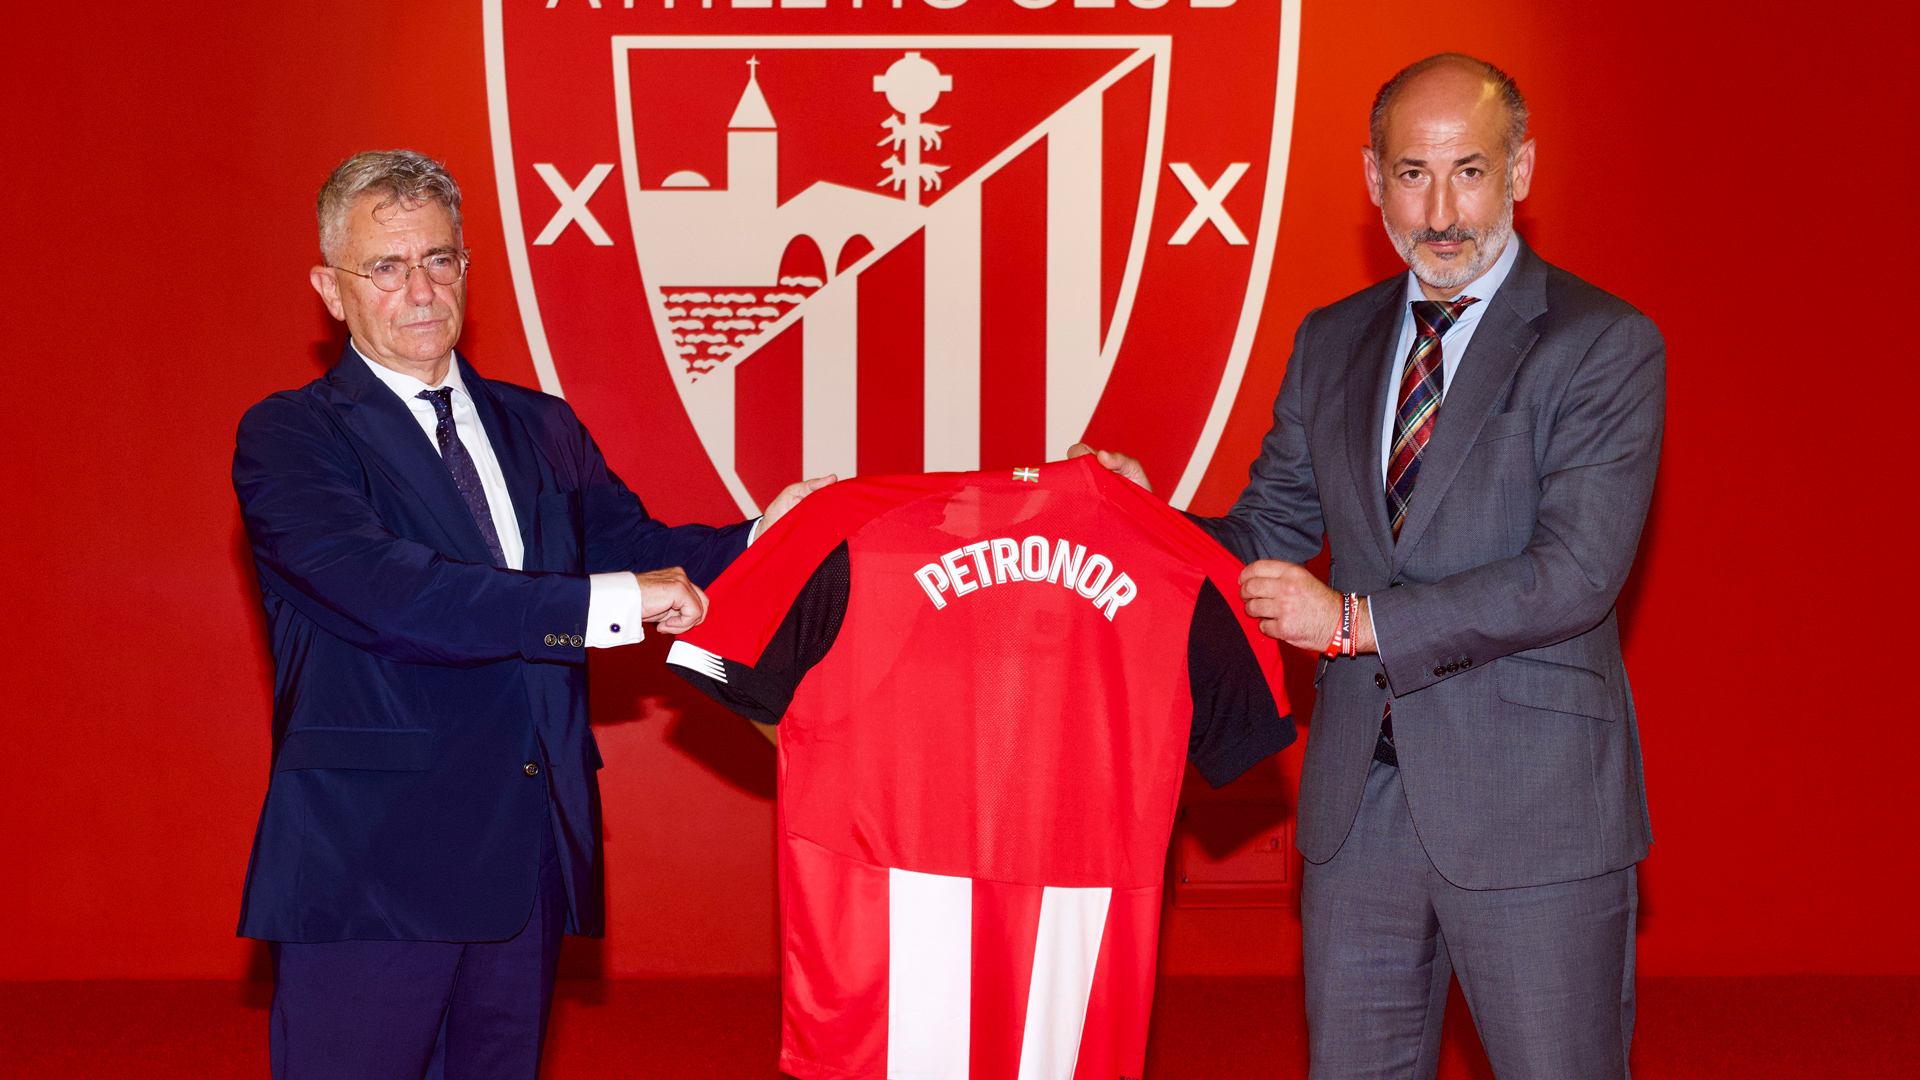 Athletic Club-Petronor agreement towards sustainability